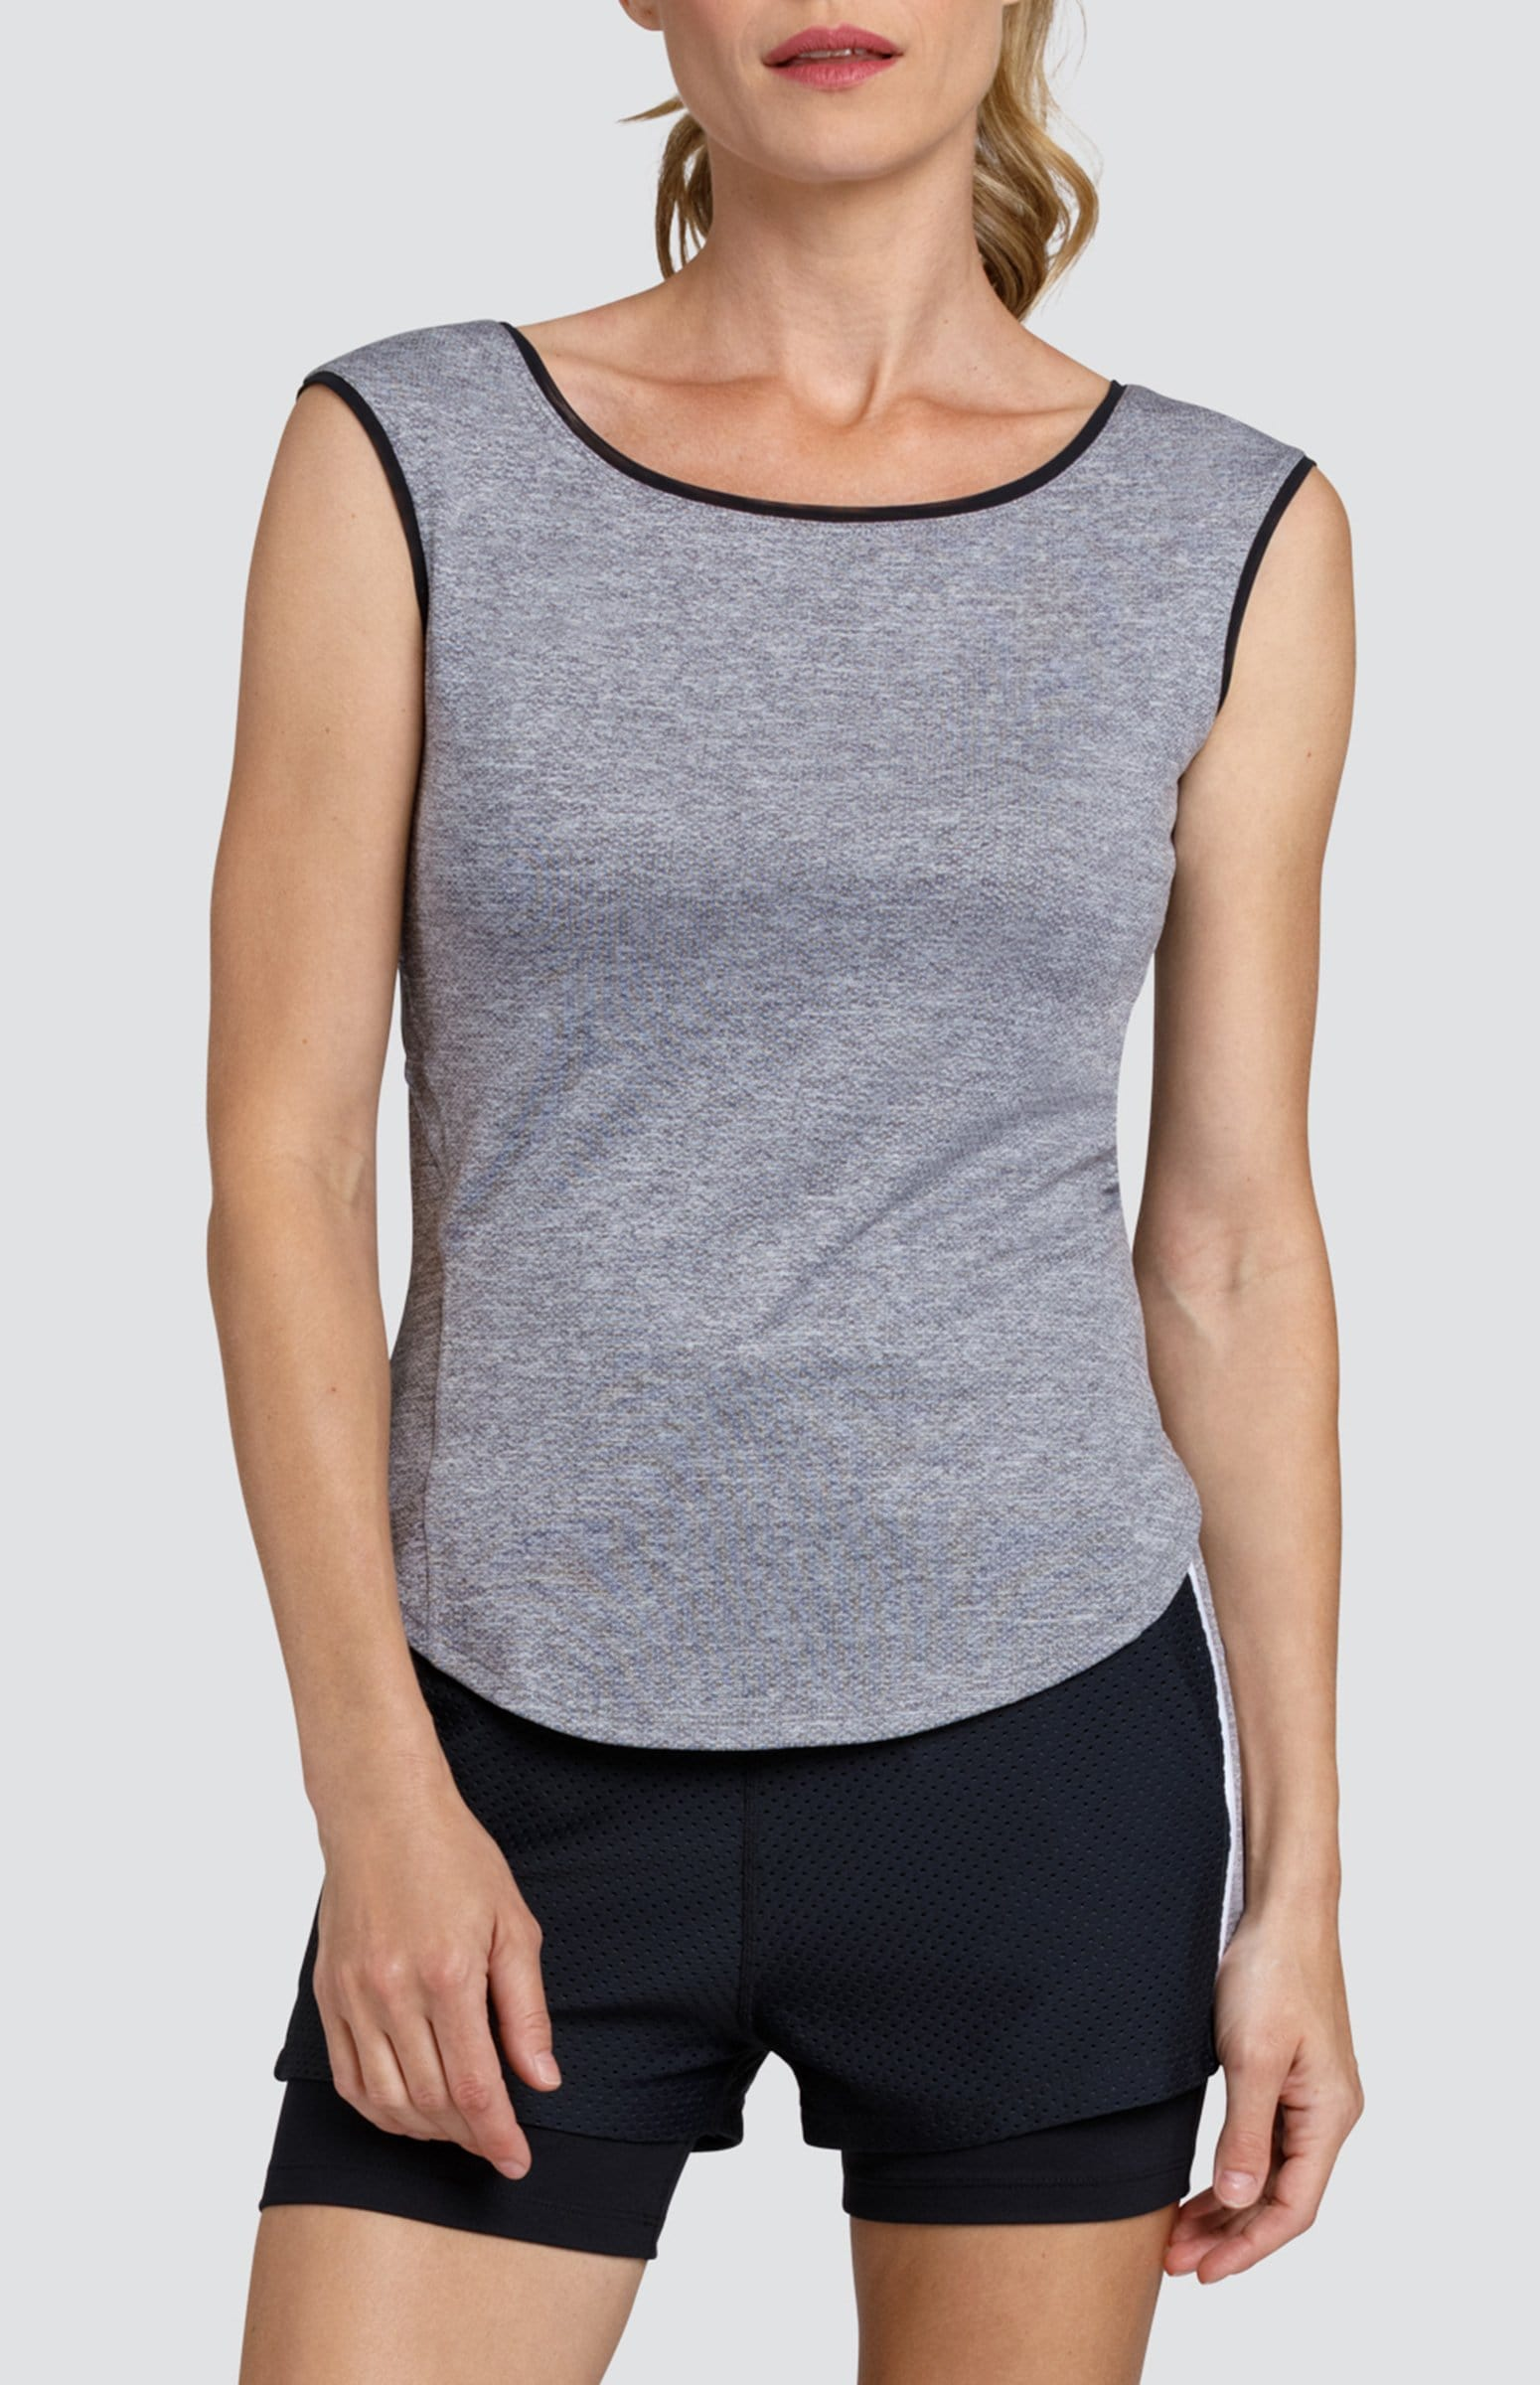 Rylie Top - Frosted Heather